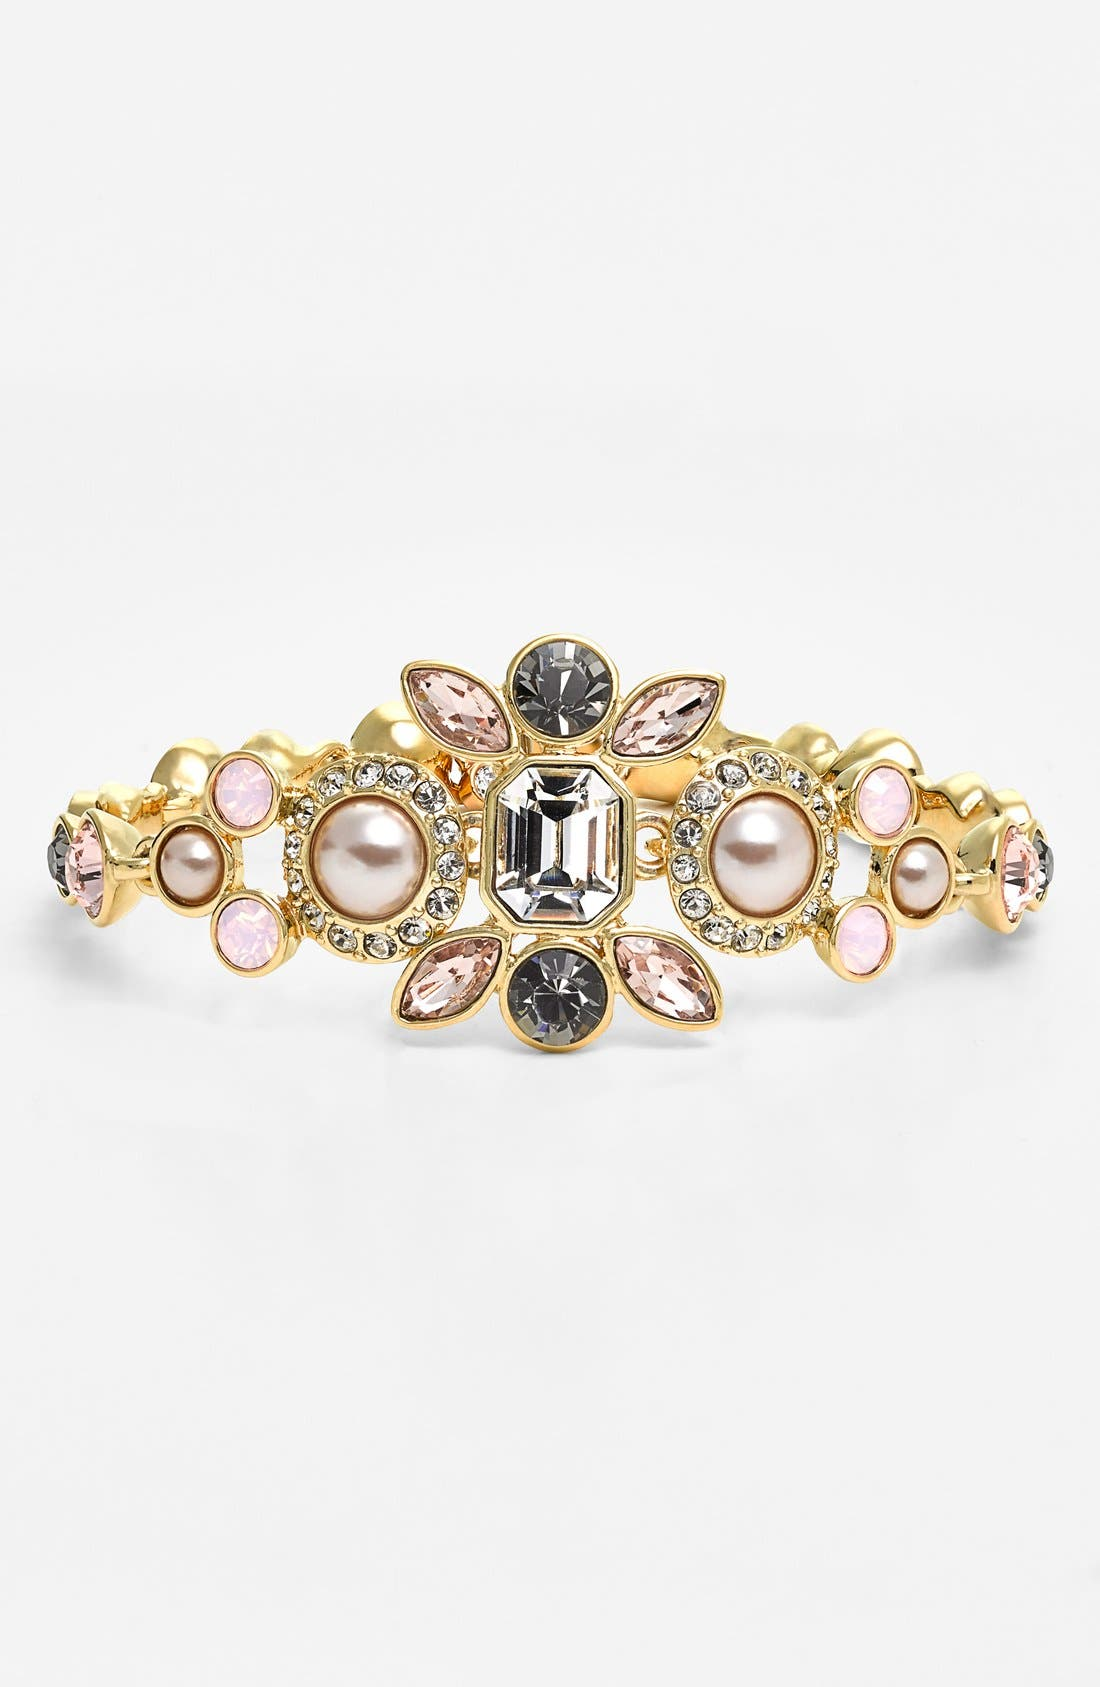 Main Image - Givenchy Crystal & Faux Pearl Bracelet